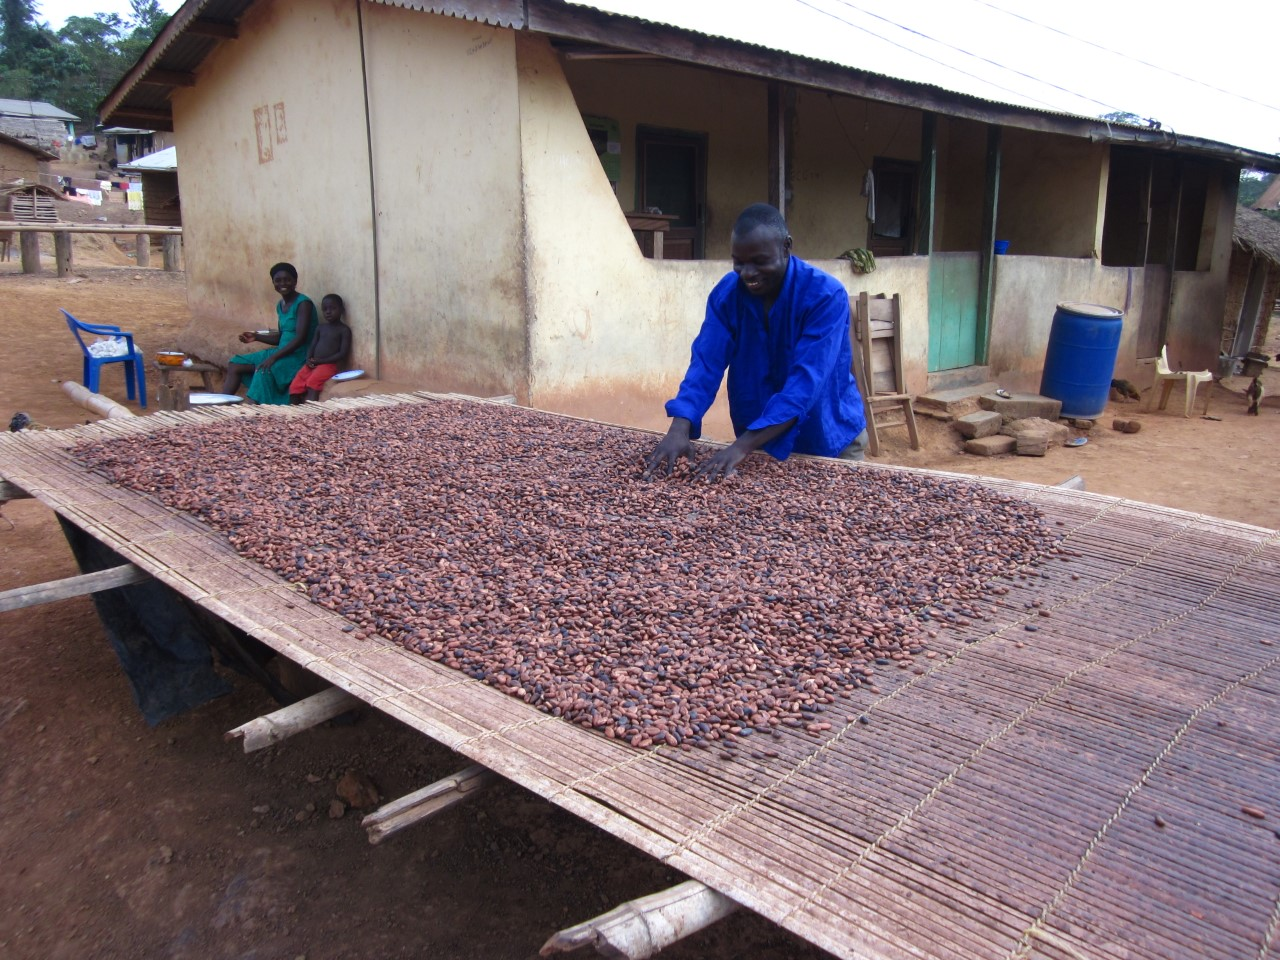 The fermented cocoa seeds drying in the West African sun.